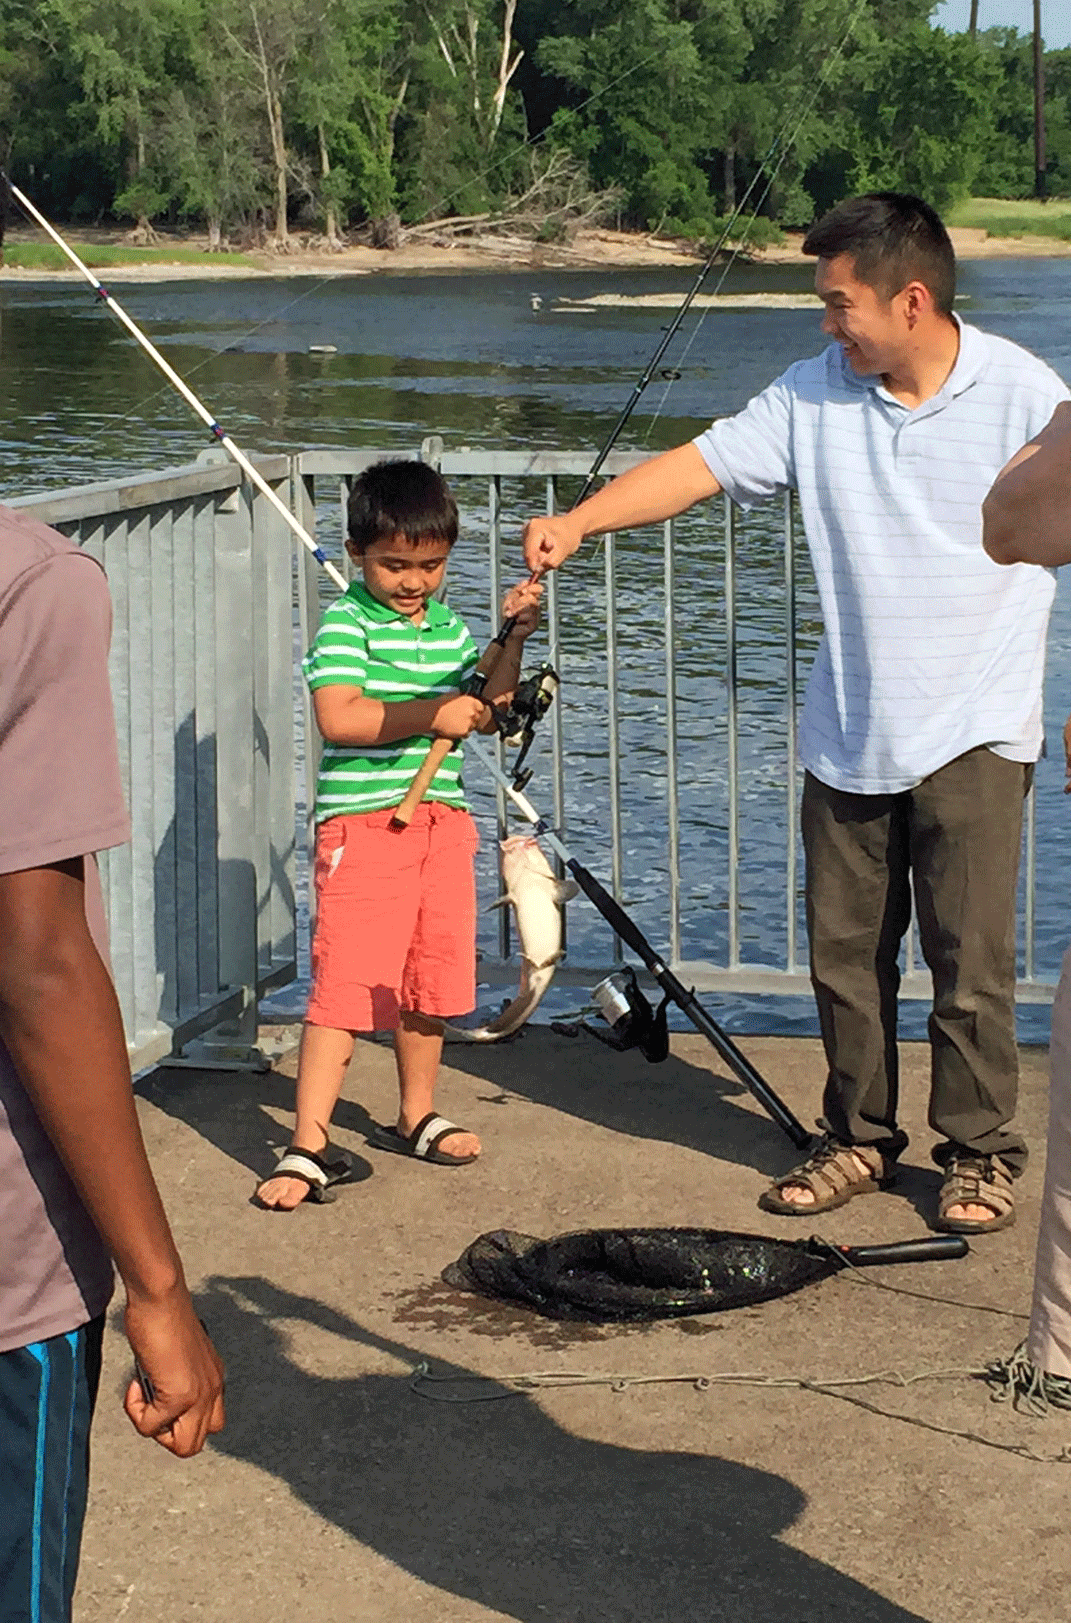 kid holding large fish he caught